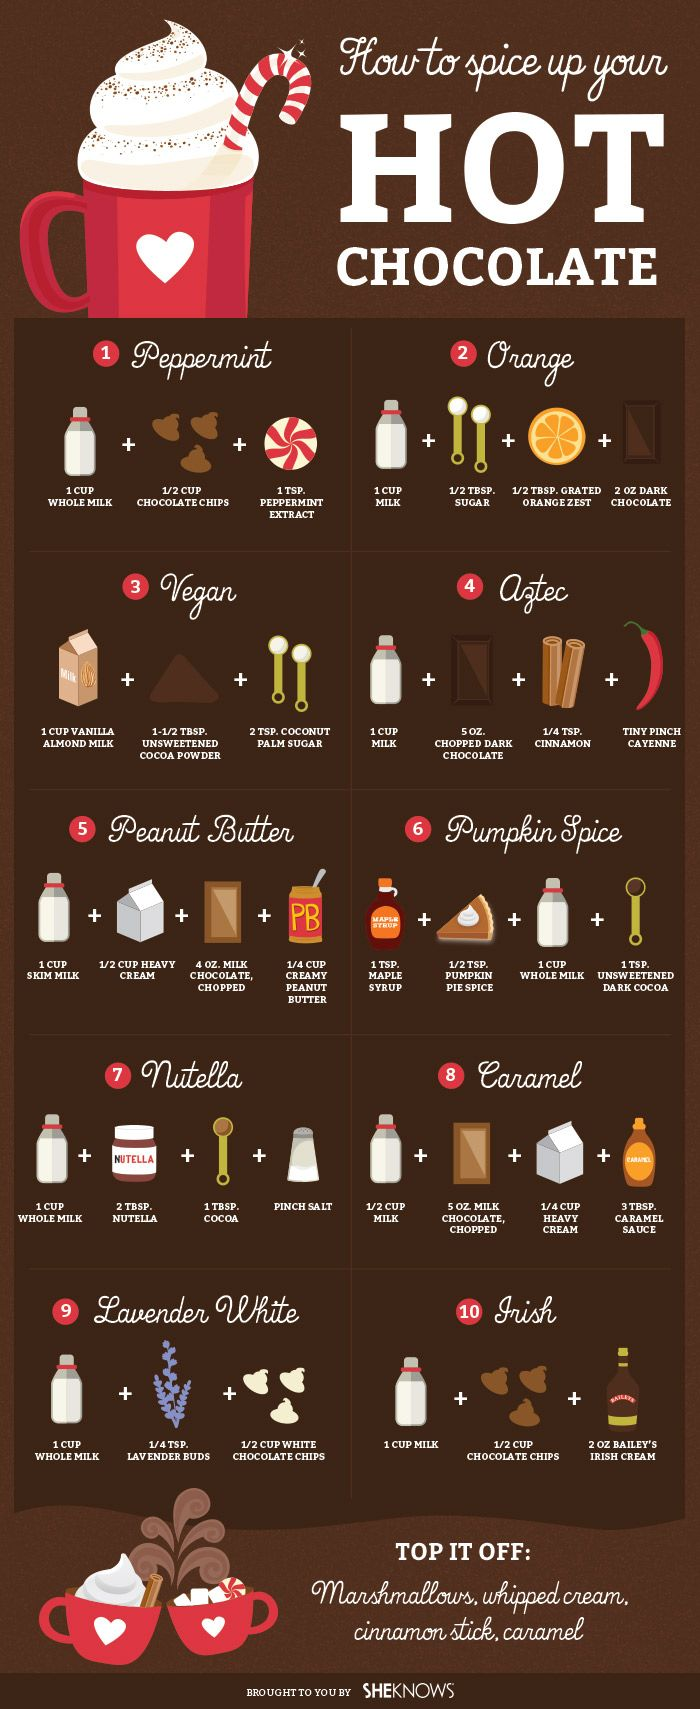 How to spice up your hot chocolate. #winter #Christmas #cocoa #drinks